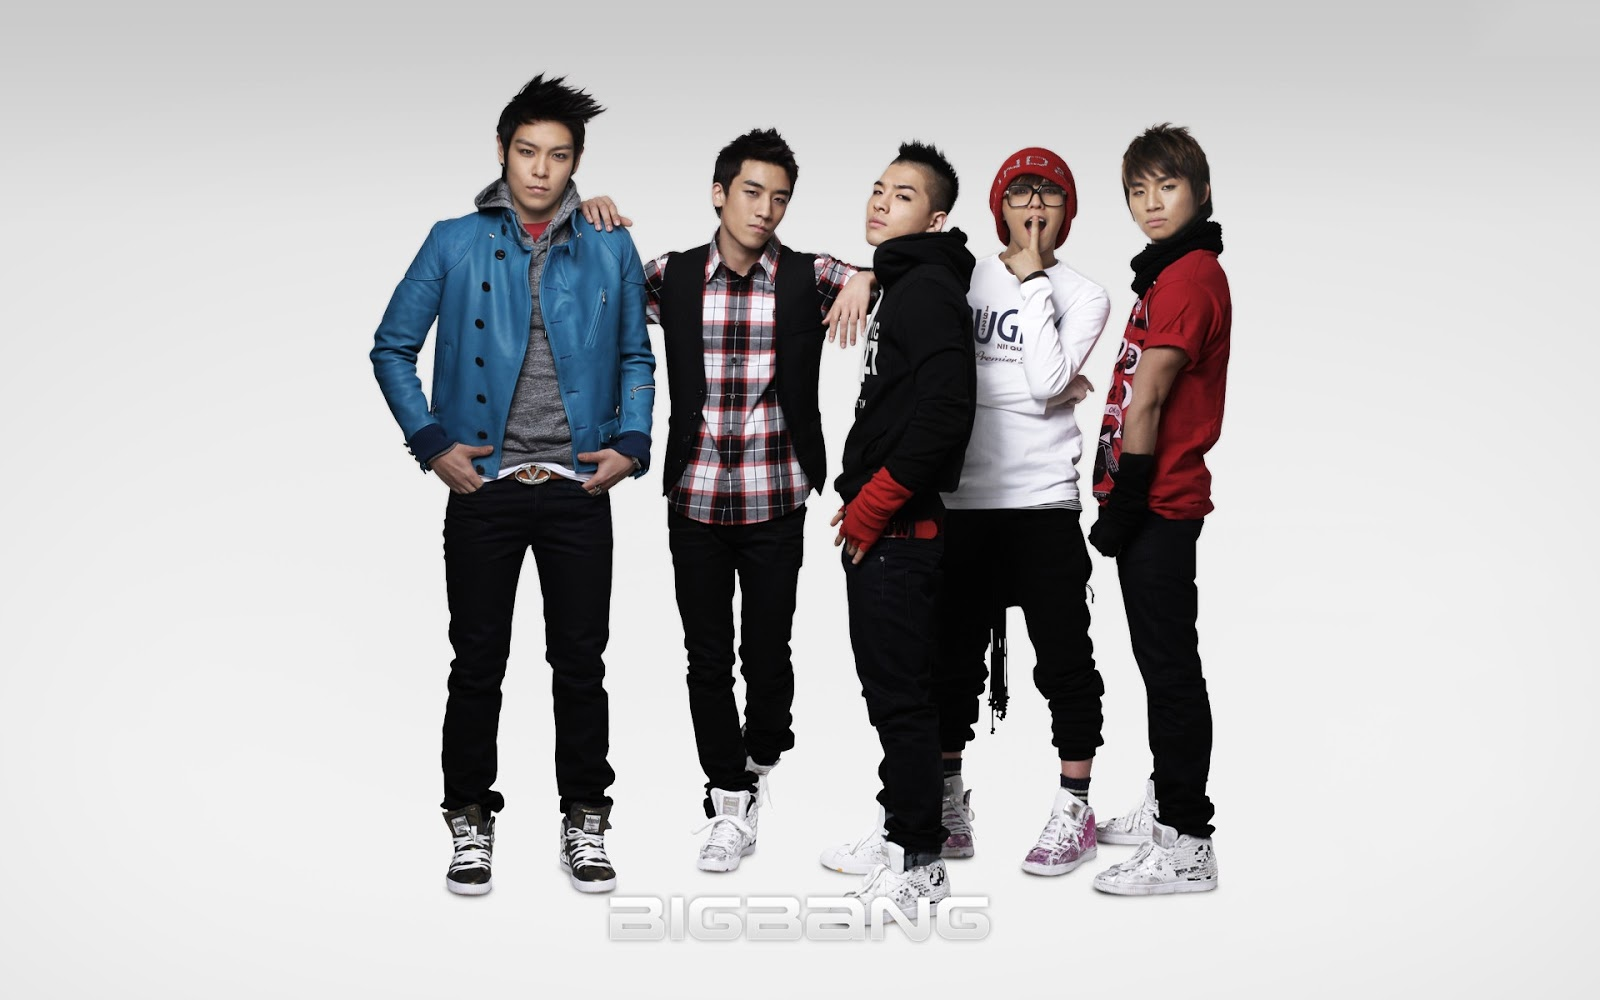 wallpaper the big bang - photo #9